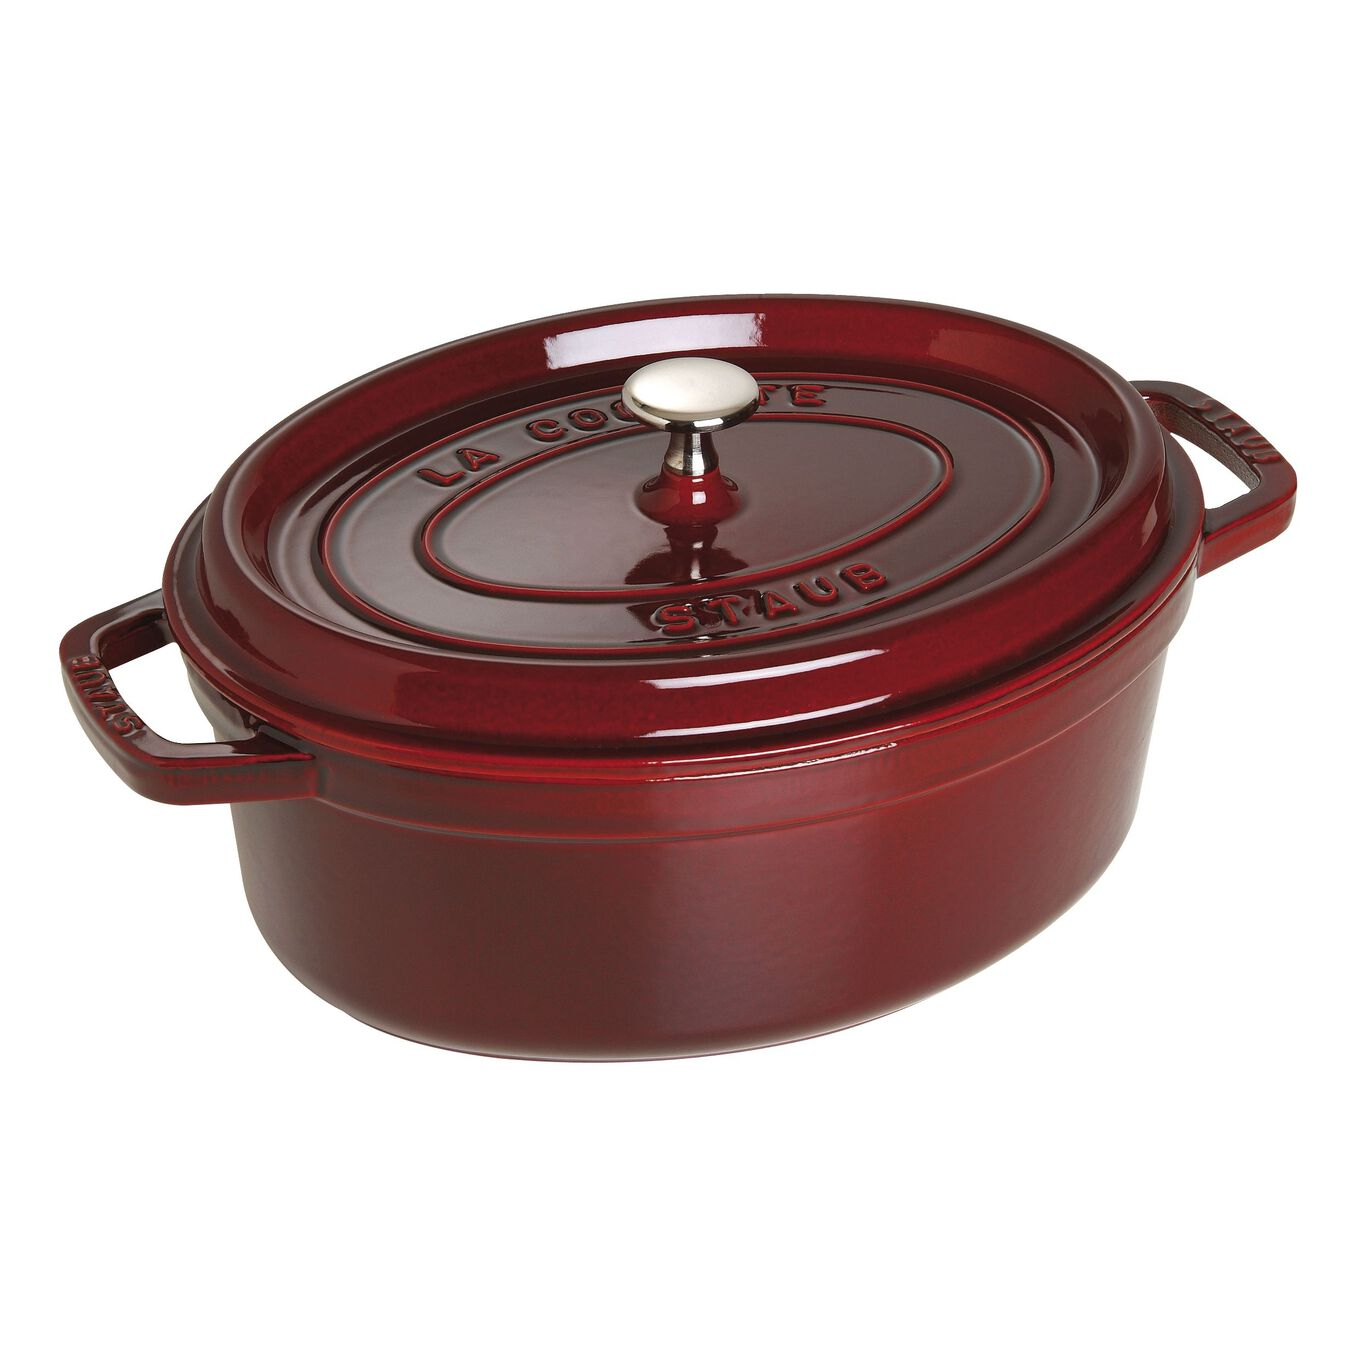 4,25 l Cast iron oval Faitout, Grenadine-Red,,large 1